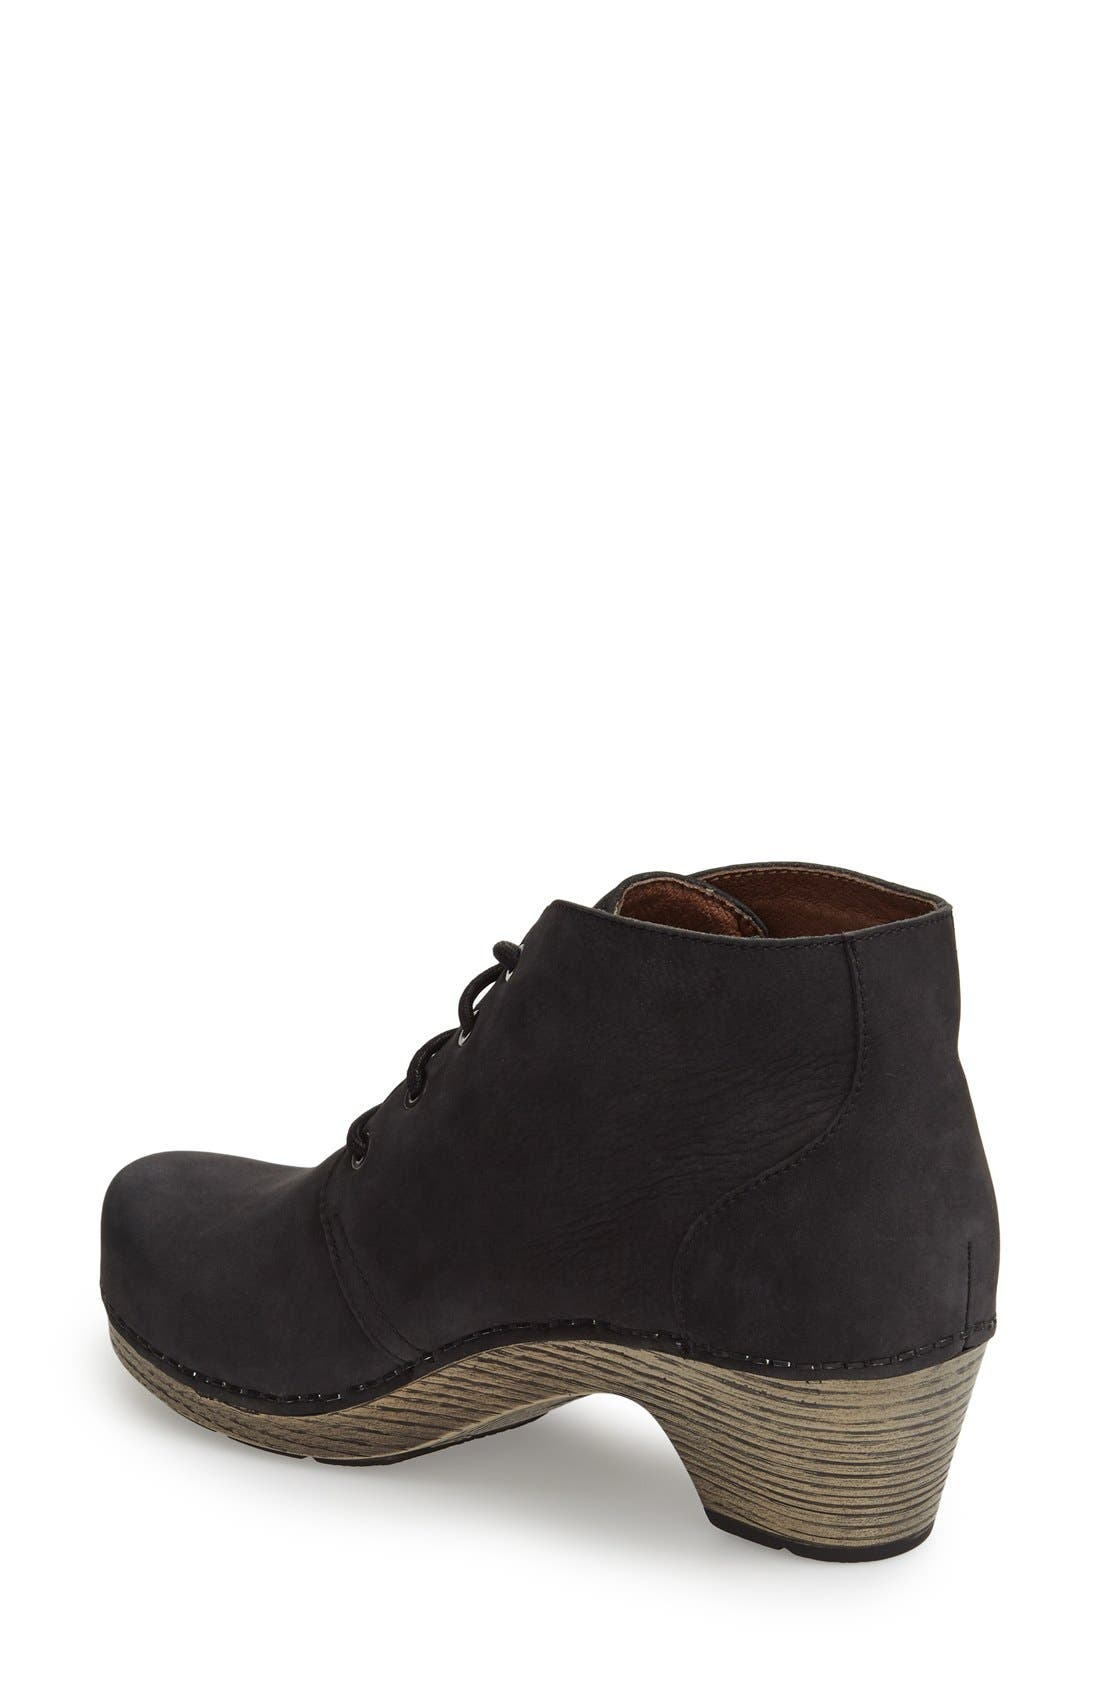 Alternate Image 2  - Dansko 'Meena' Lace-Up Bootie (Women)